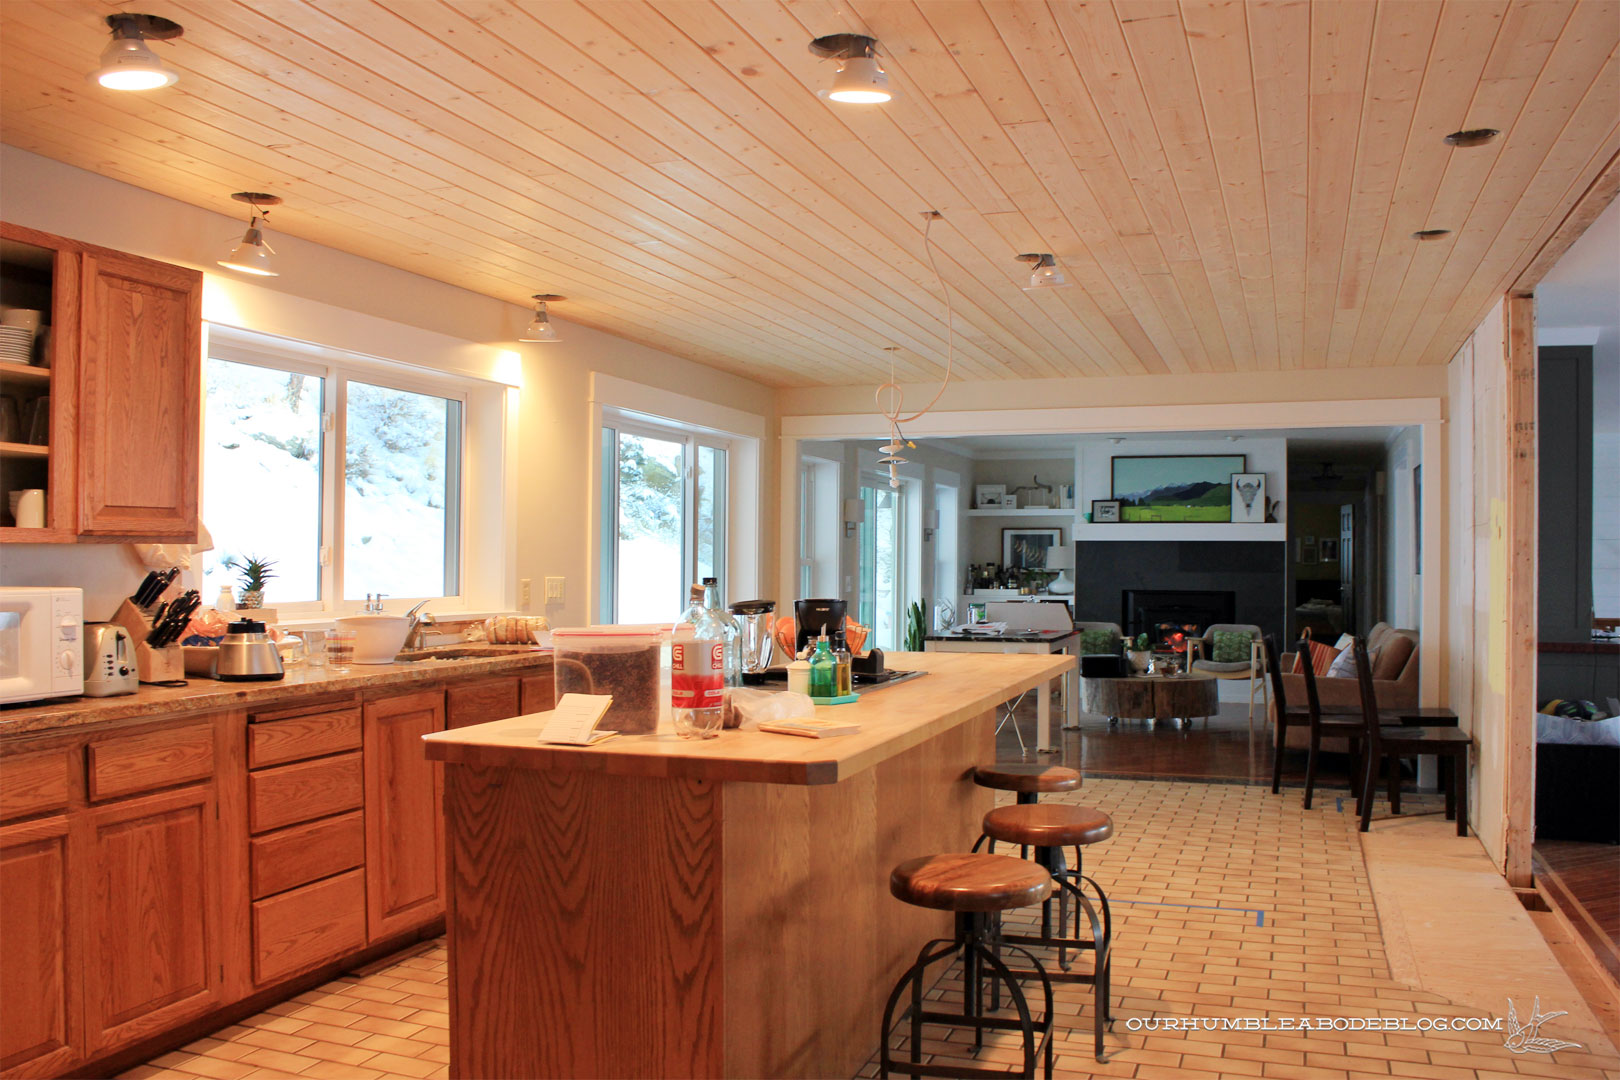 Kitchen Ceiling Tongue And Groove Planks Toward Family Room